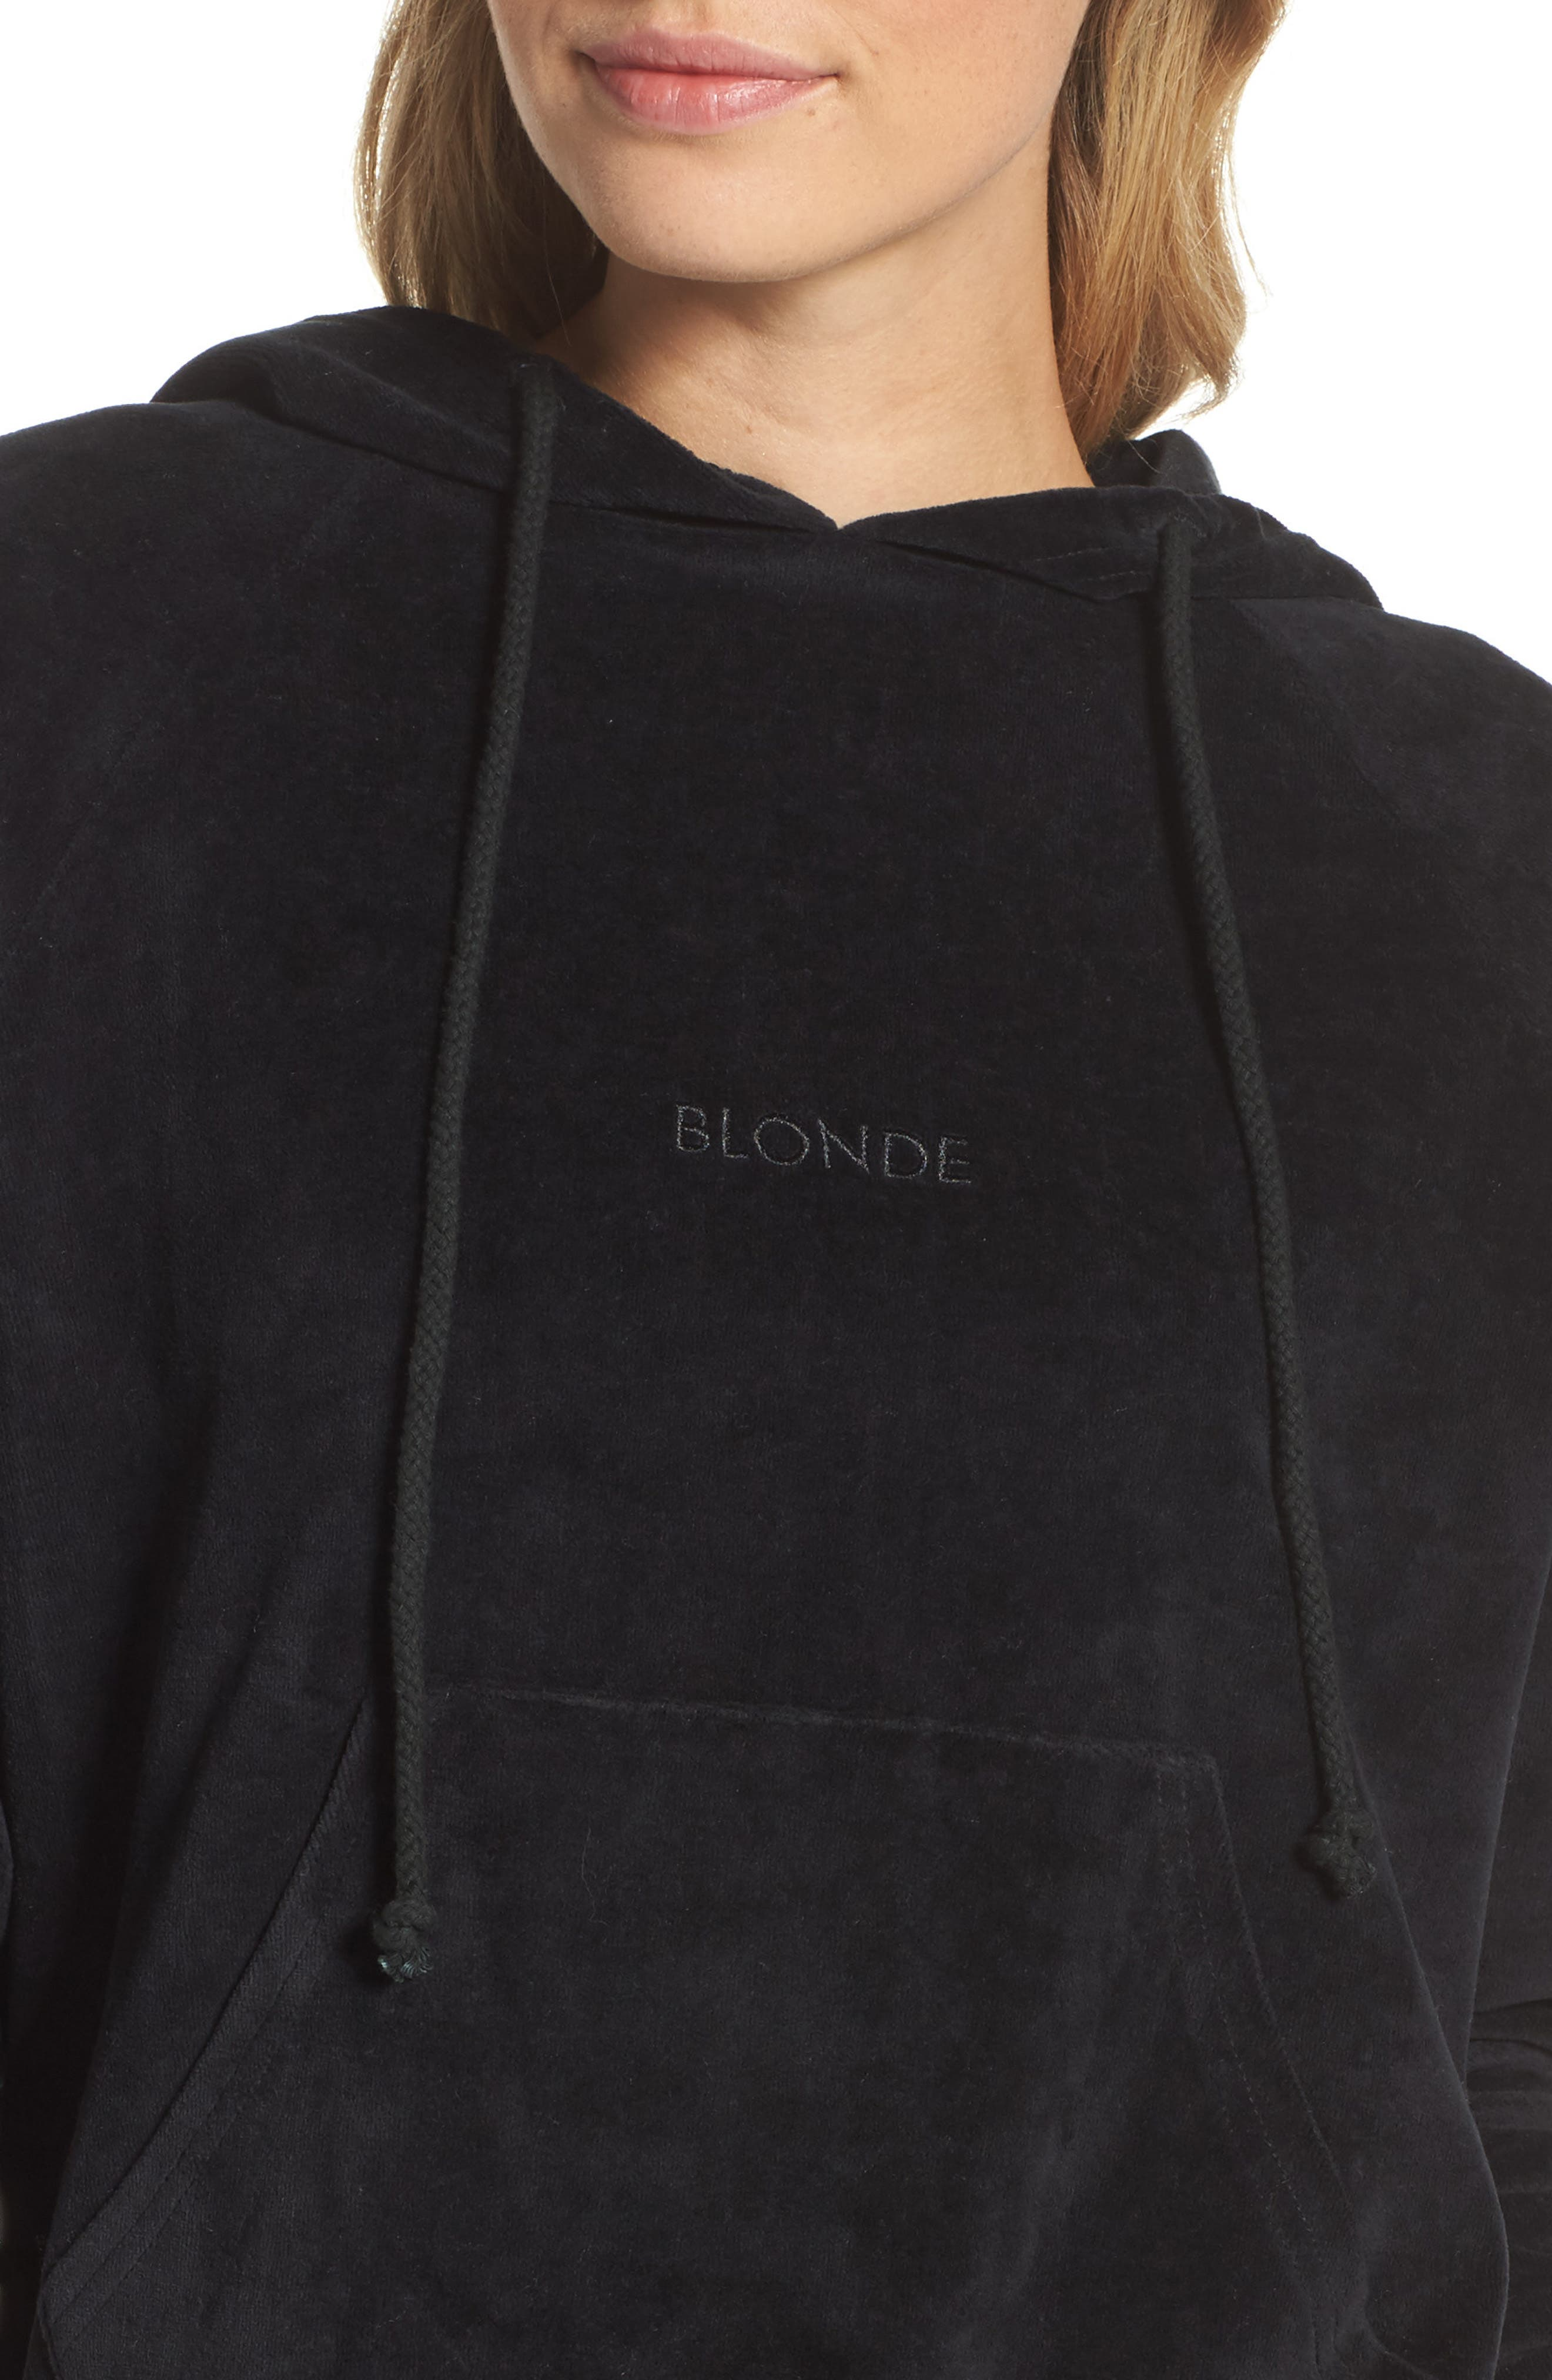 Blonde Embroidered Velour Hoodie,                             Alternate thumbnail 6, color,                             Black